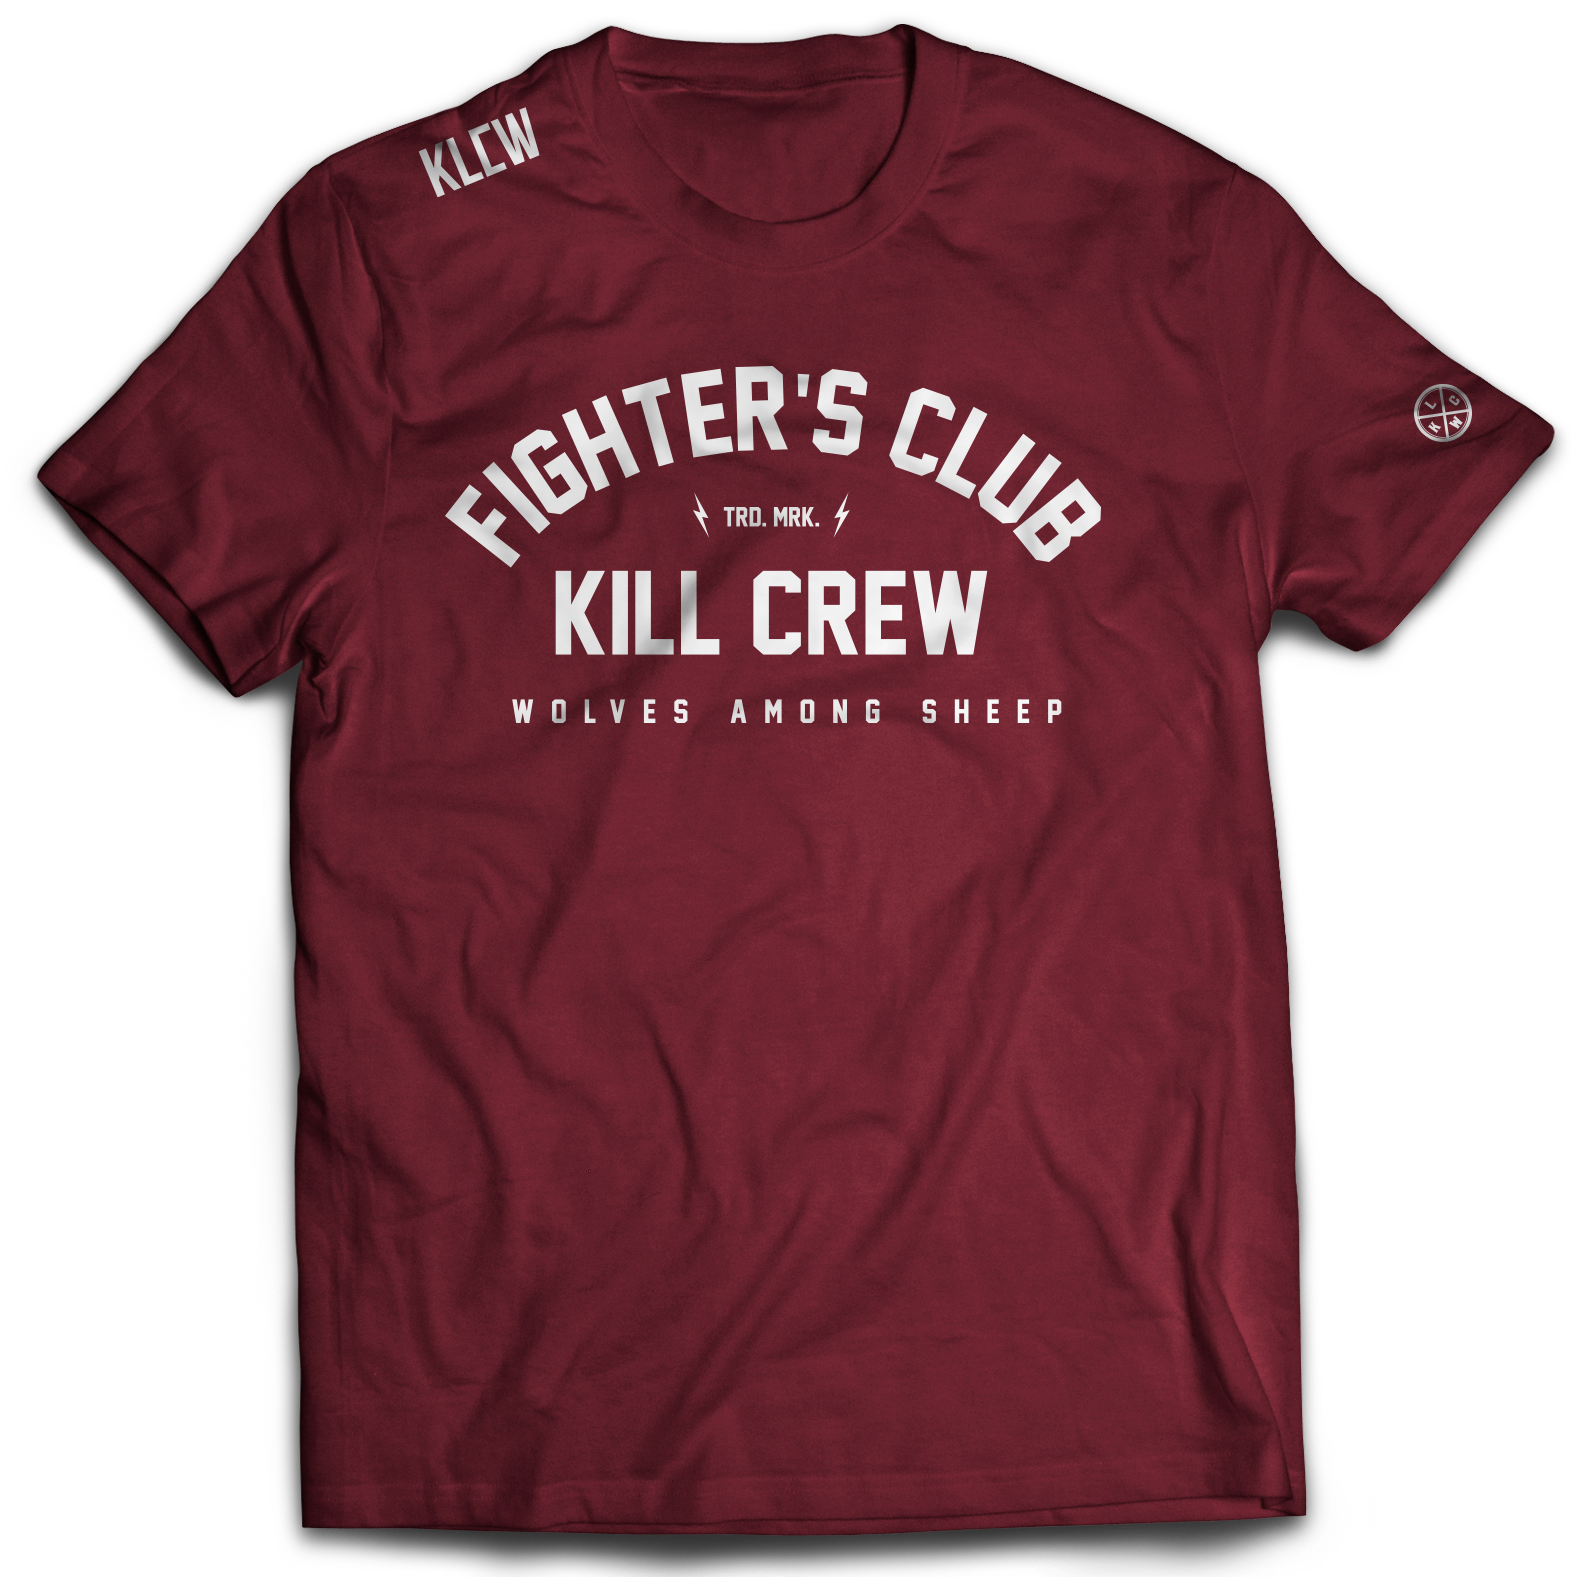 FIGHTER'S CLUB T-SHIRT - MAROON